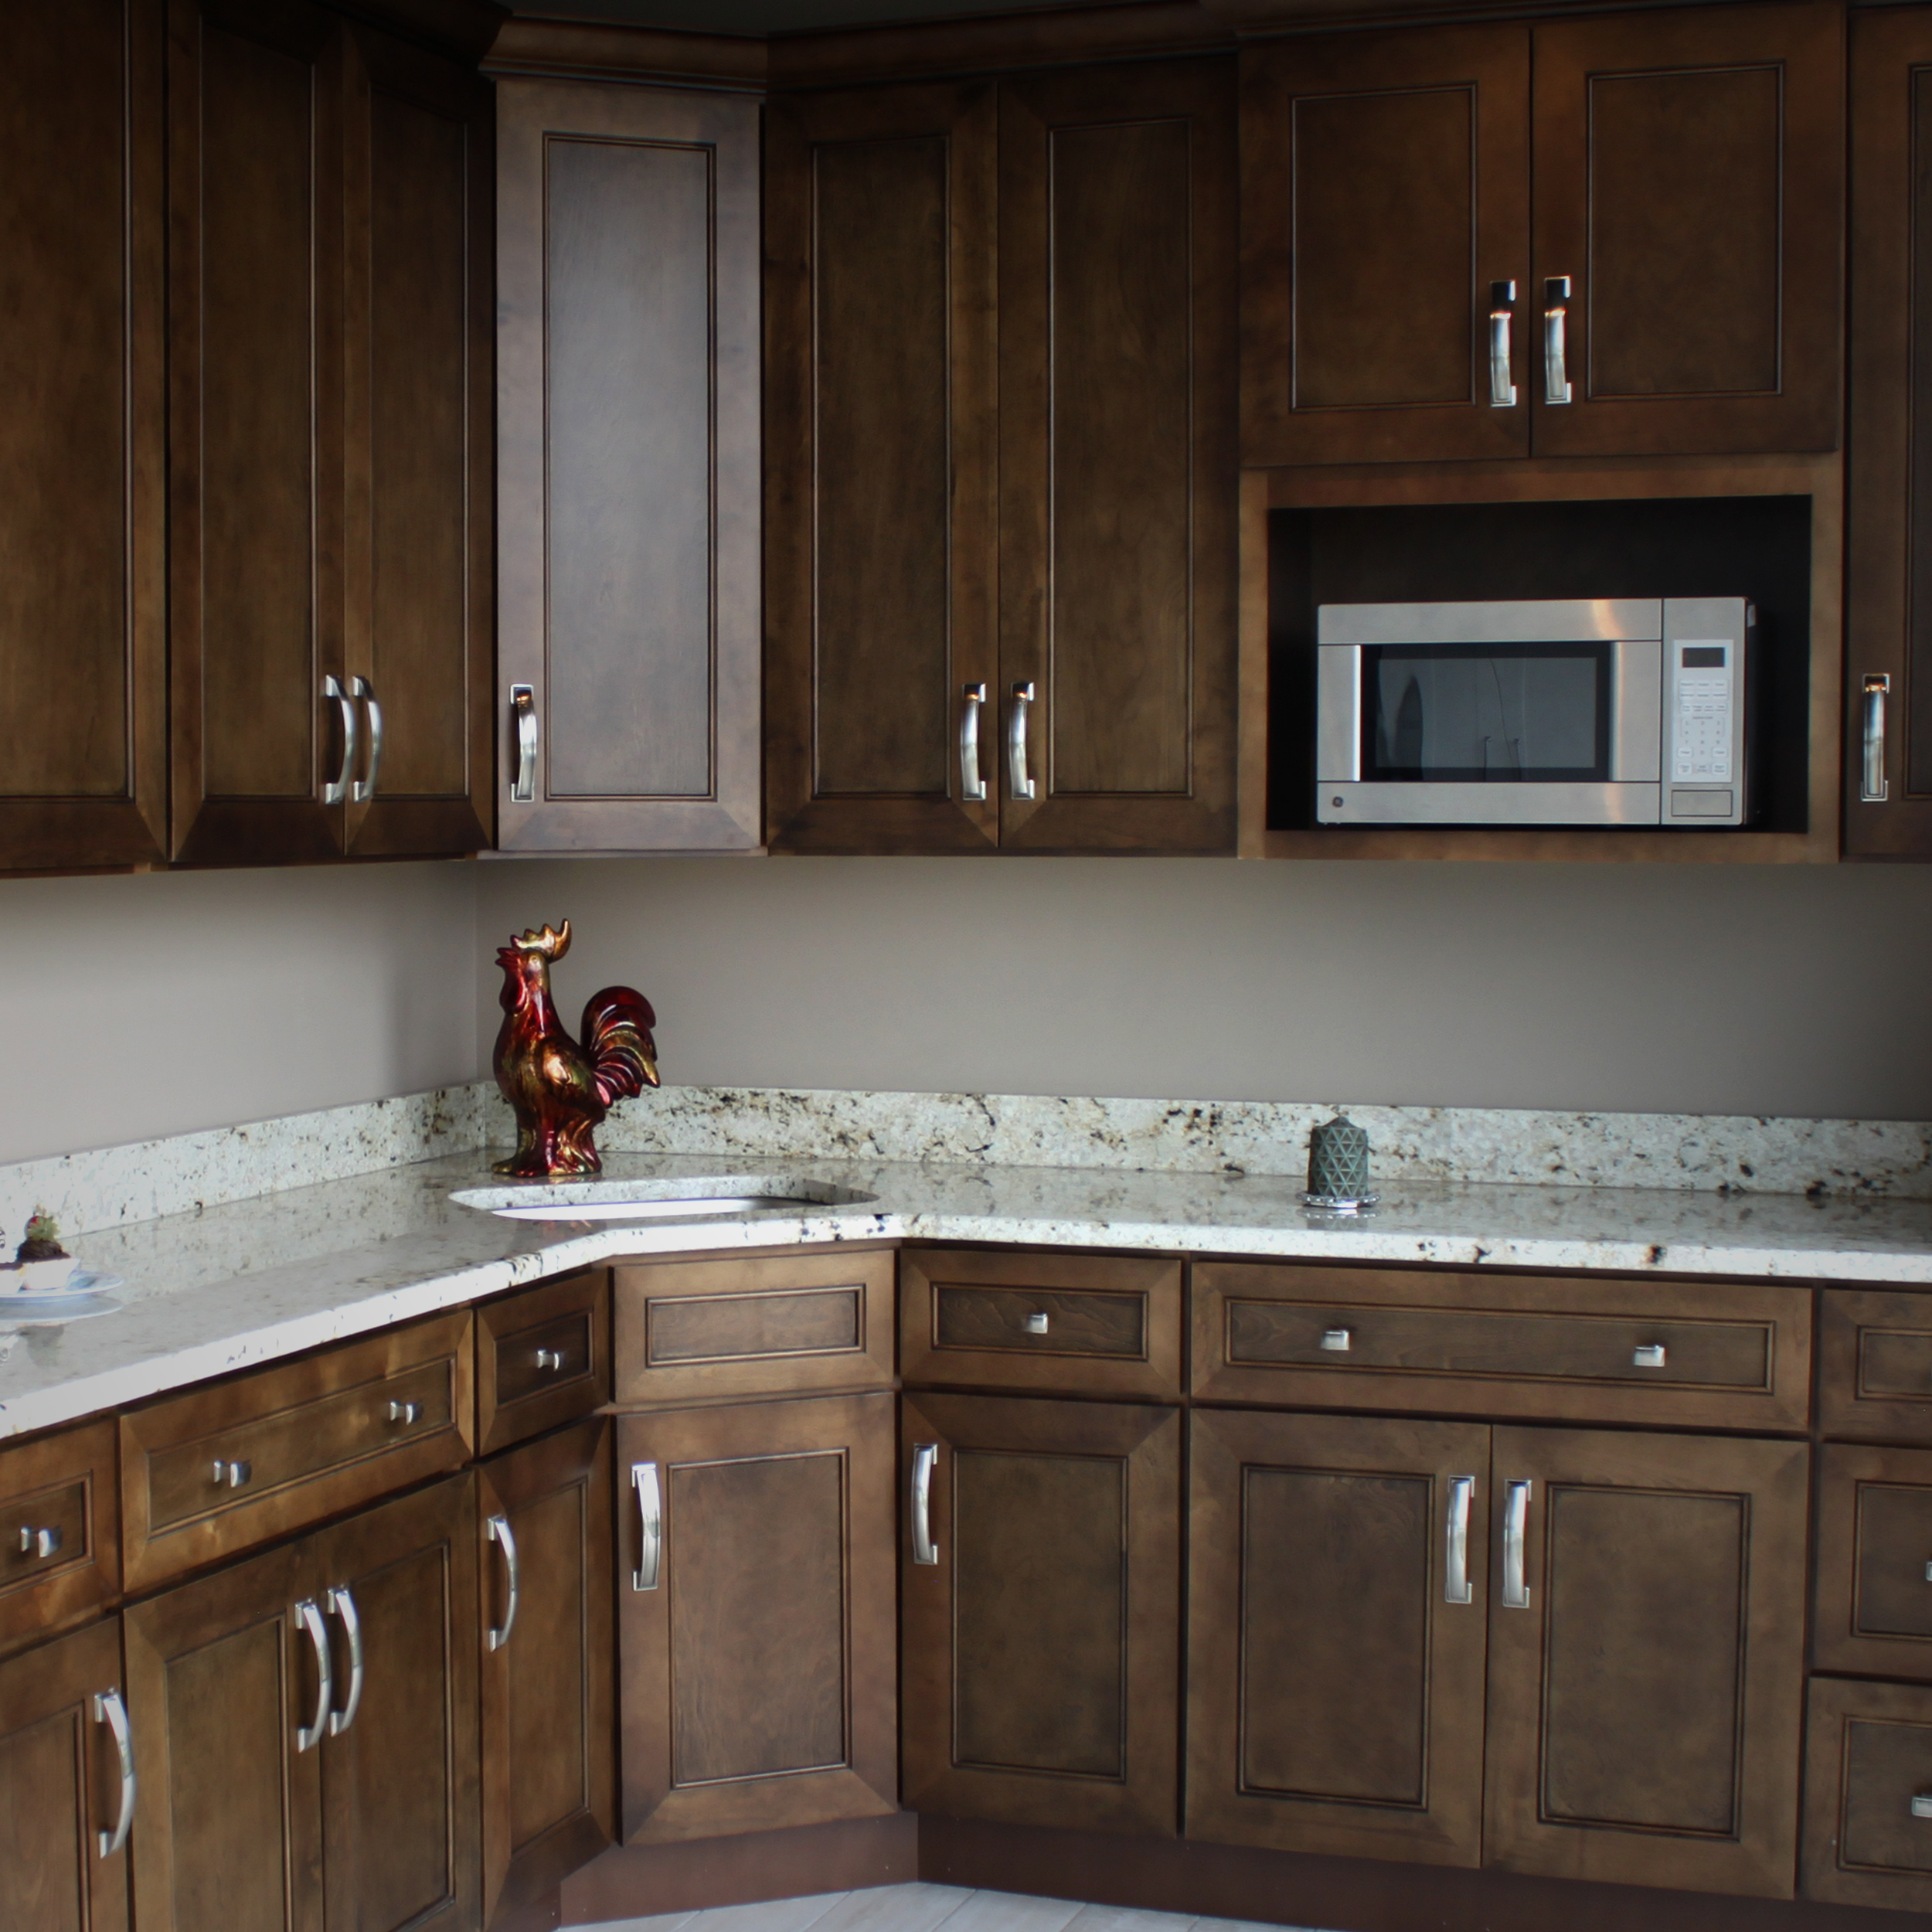 Des Plaines Kitchen Cabinets Sinks And Countertops Rock Counter